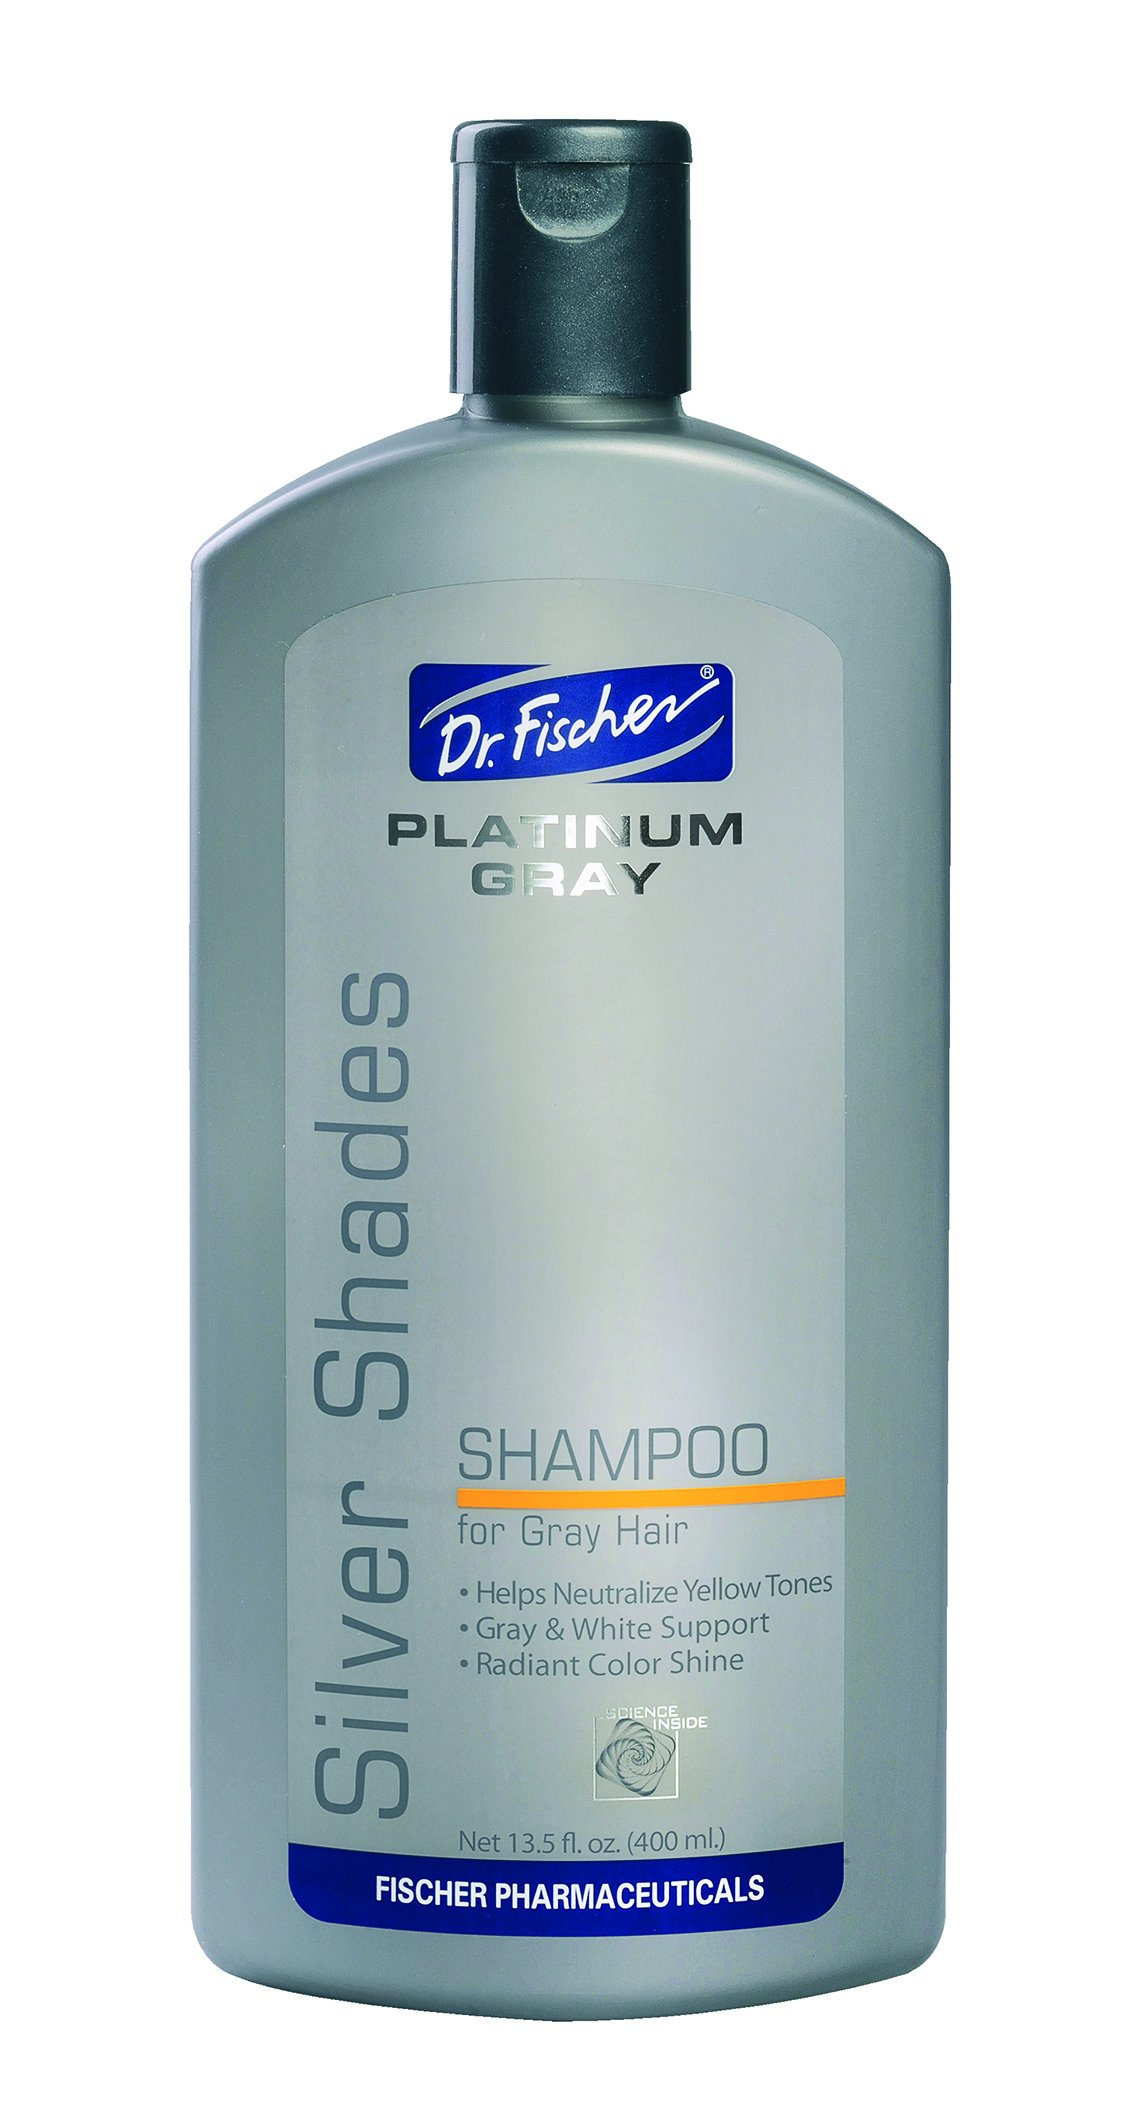 Nourishing Platinum Shampoo for Men & Women with Gray/White / Colored hair (13.5 fl. oz.)